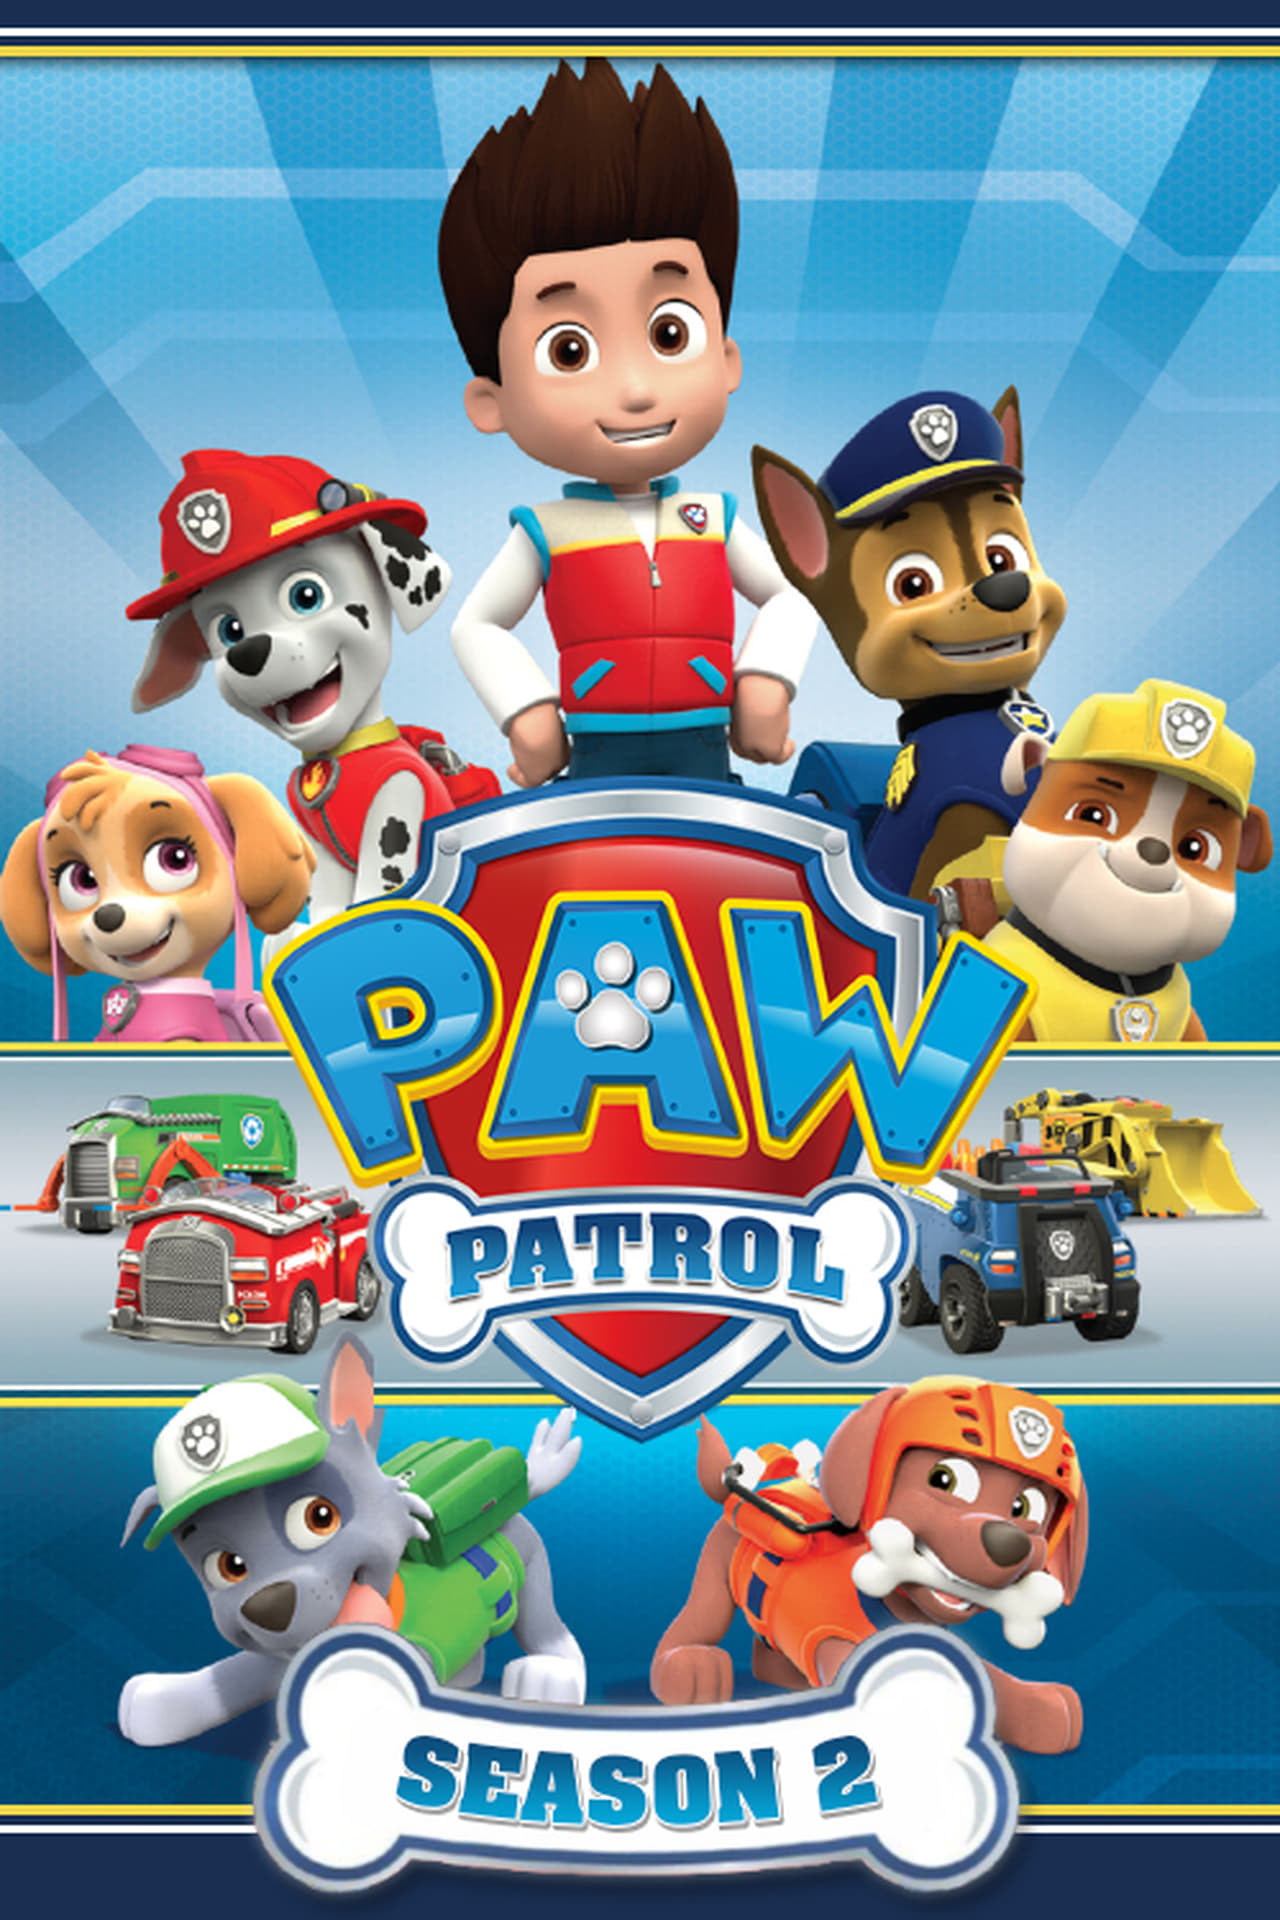 Paw Patrol Season 2 (2014) putlockers cafe